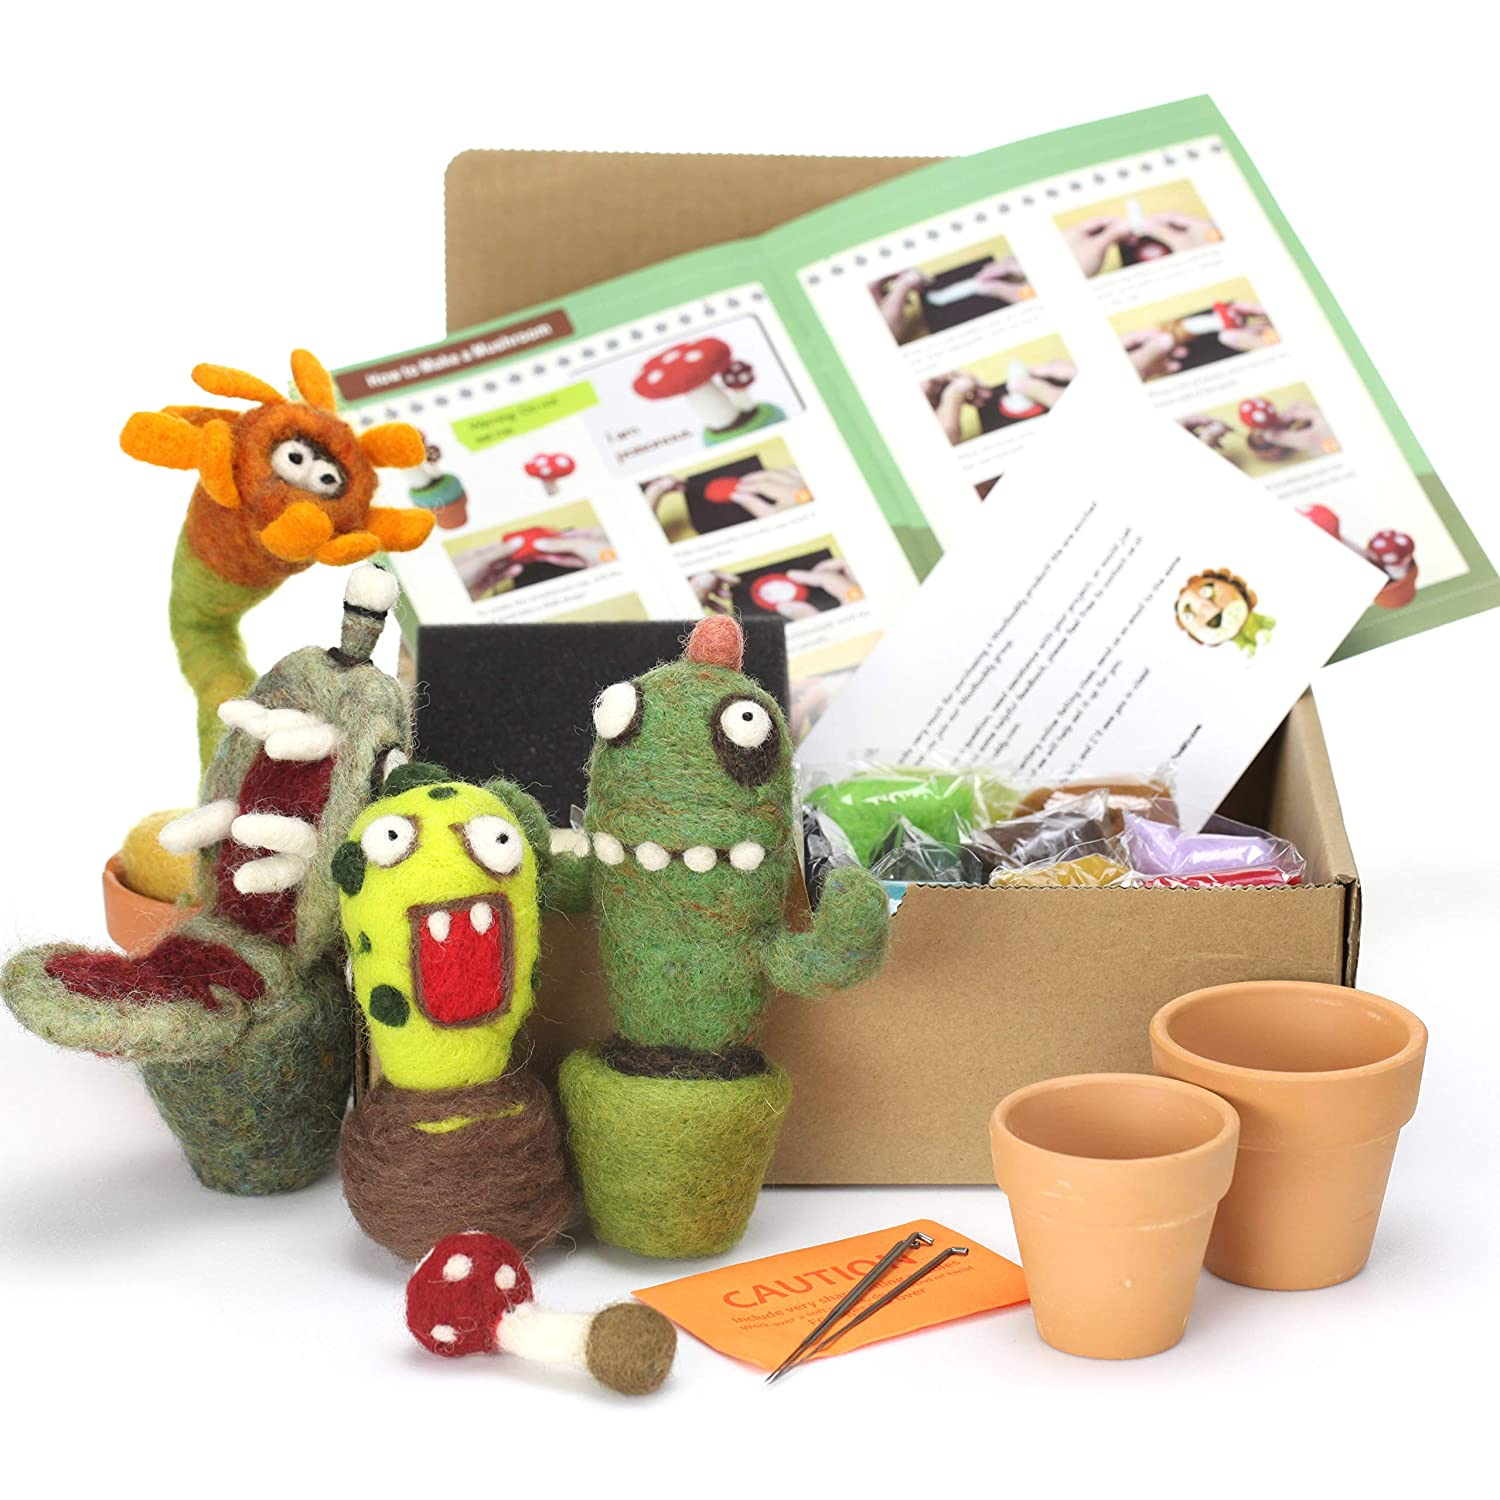 Instruction /& Videos- Great for Arts /& Crafts /& Easy for Beginners Clay pots Included Woolbuddy Needle Felting Cactus Kit 4 Needles Make 4+ Cactus Felting Foam Mat